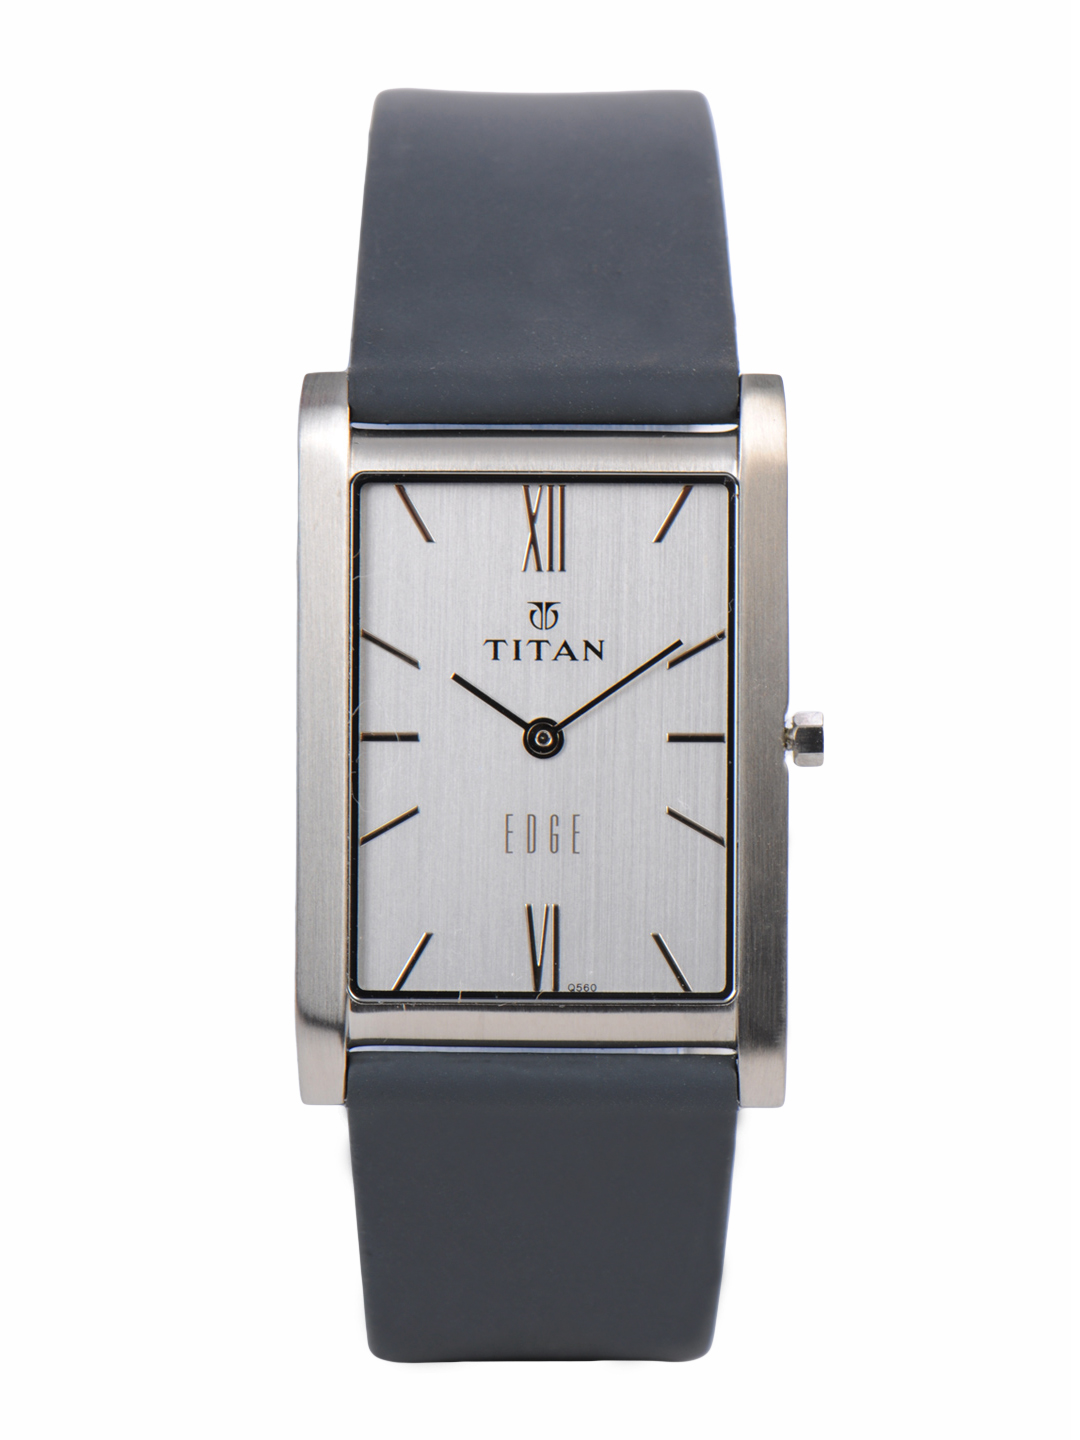 edge titan watch watches regular men leather in en